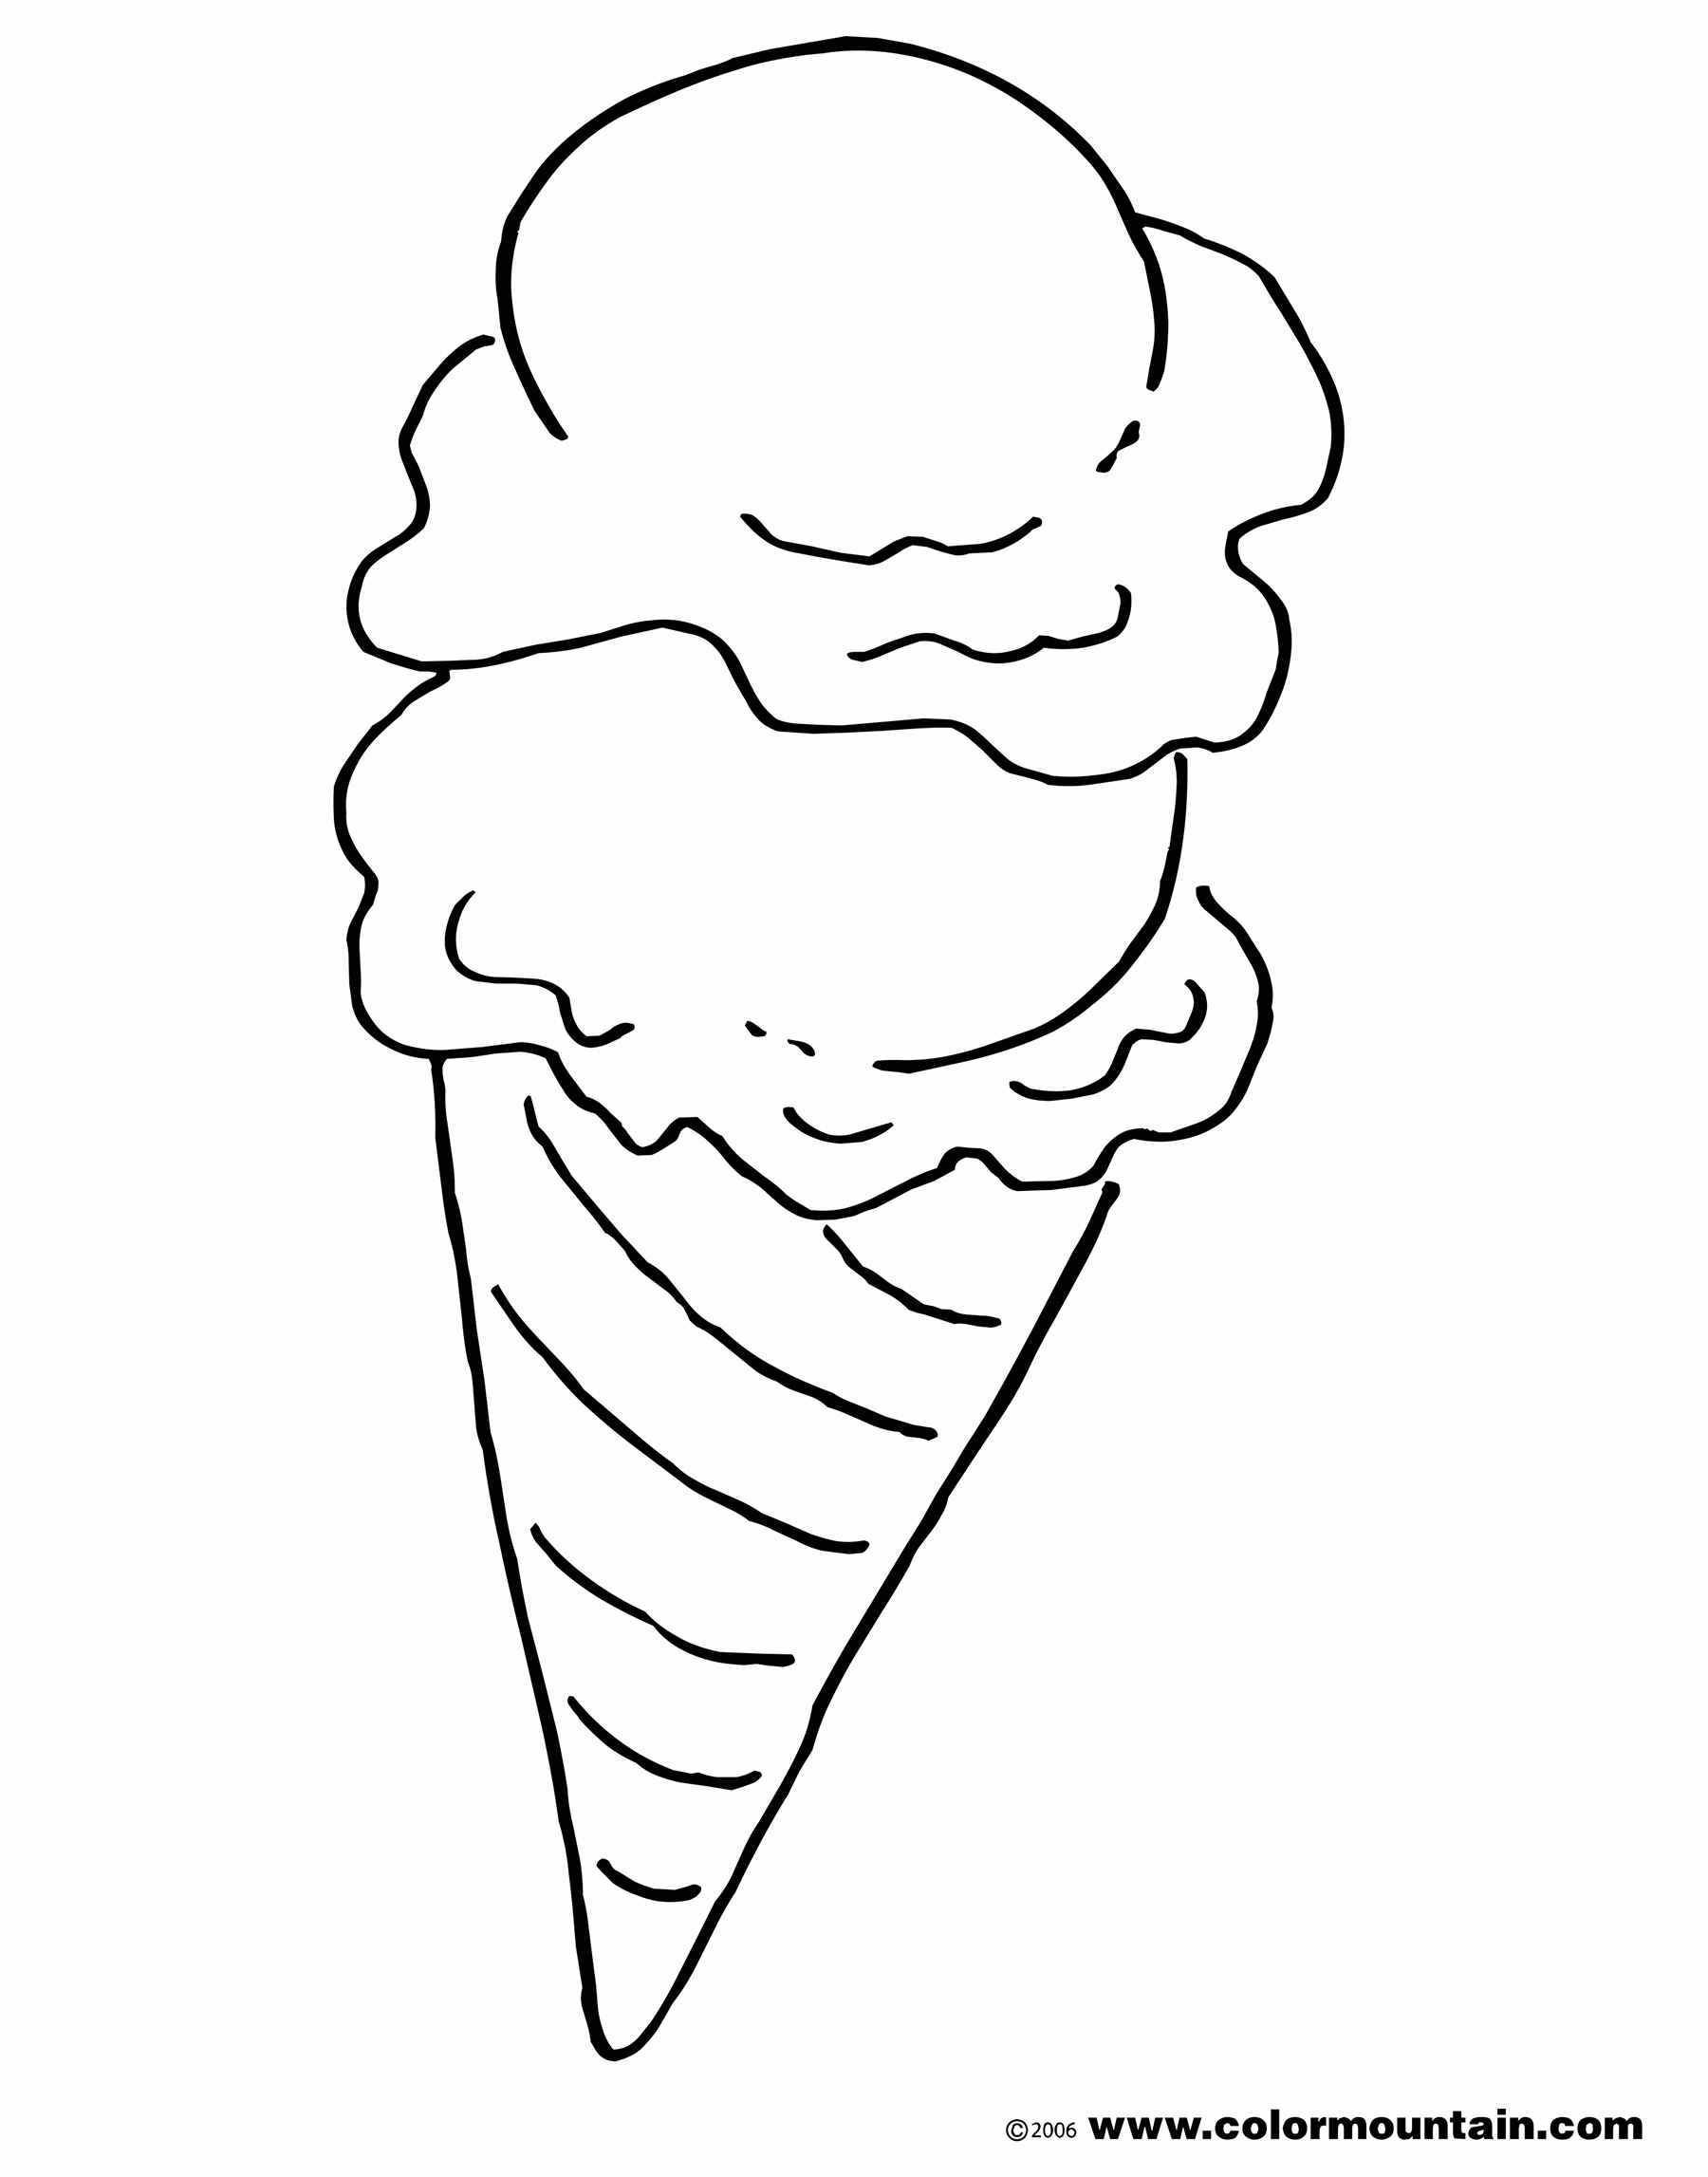 Ice Cream Cone Coloring Pages Affordable Way To Make The Kids